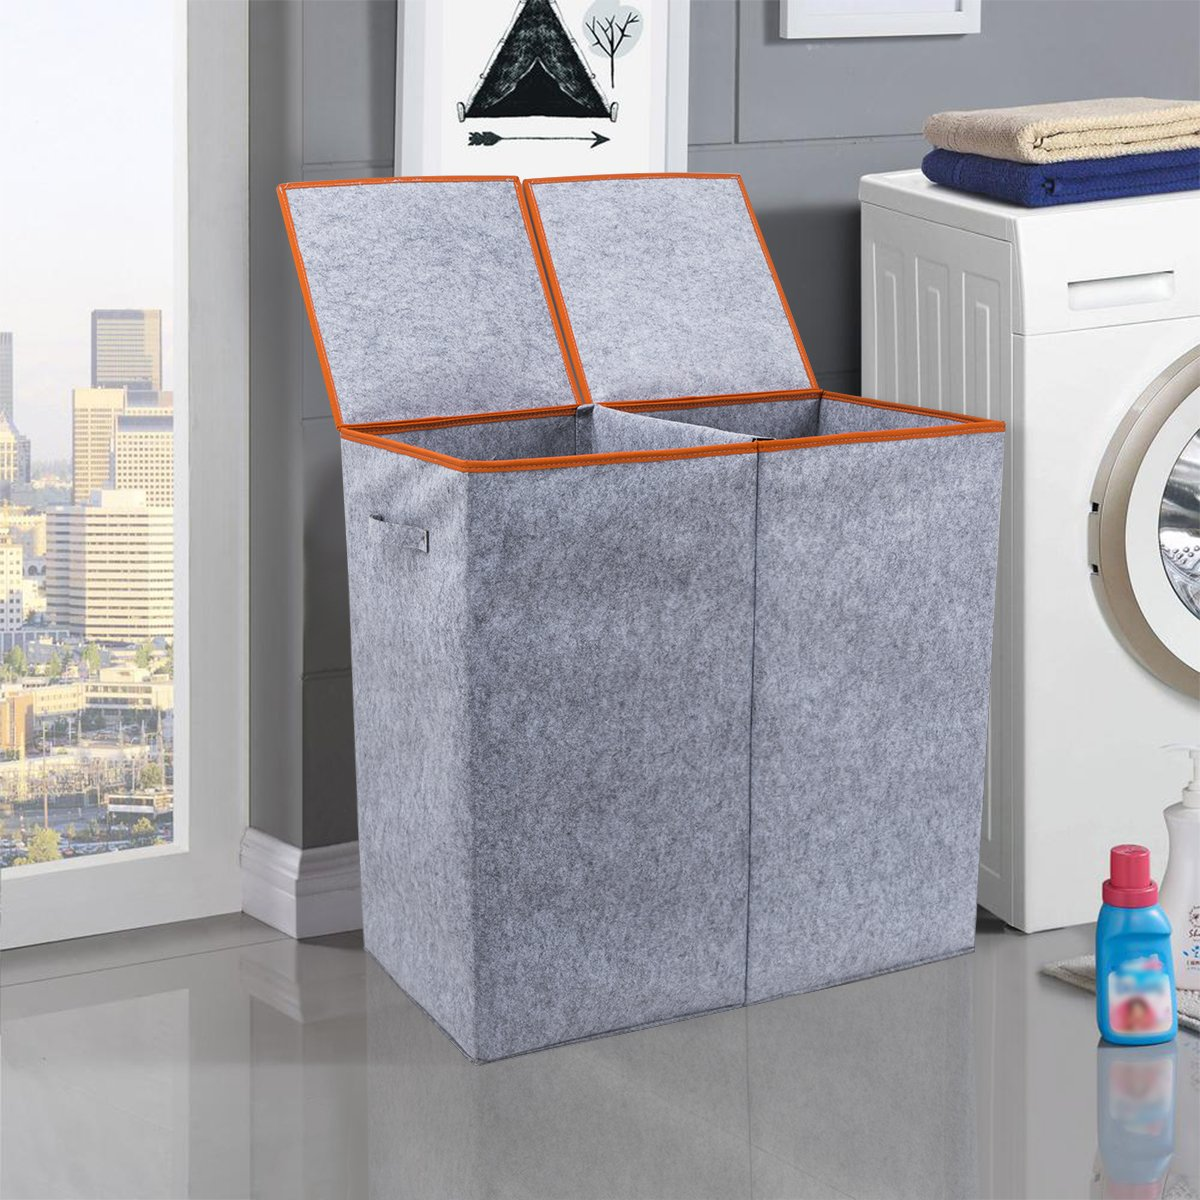 Chrislley Large Double Laundry Hamper with Lids Dirty Laundry Basket Collapsible Tall Home Laundry Hamper Sorter (Grey)